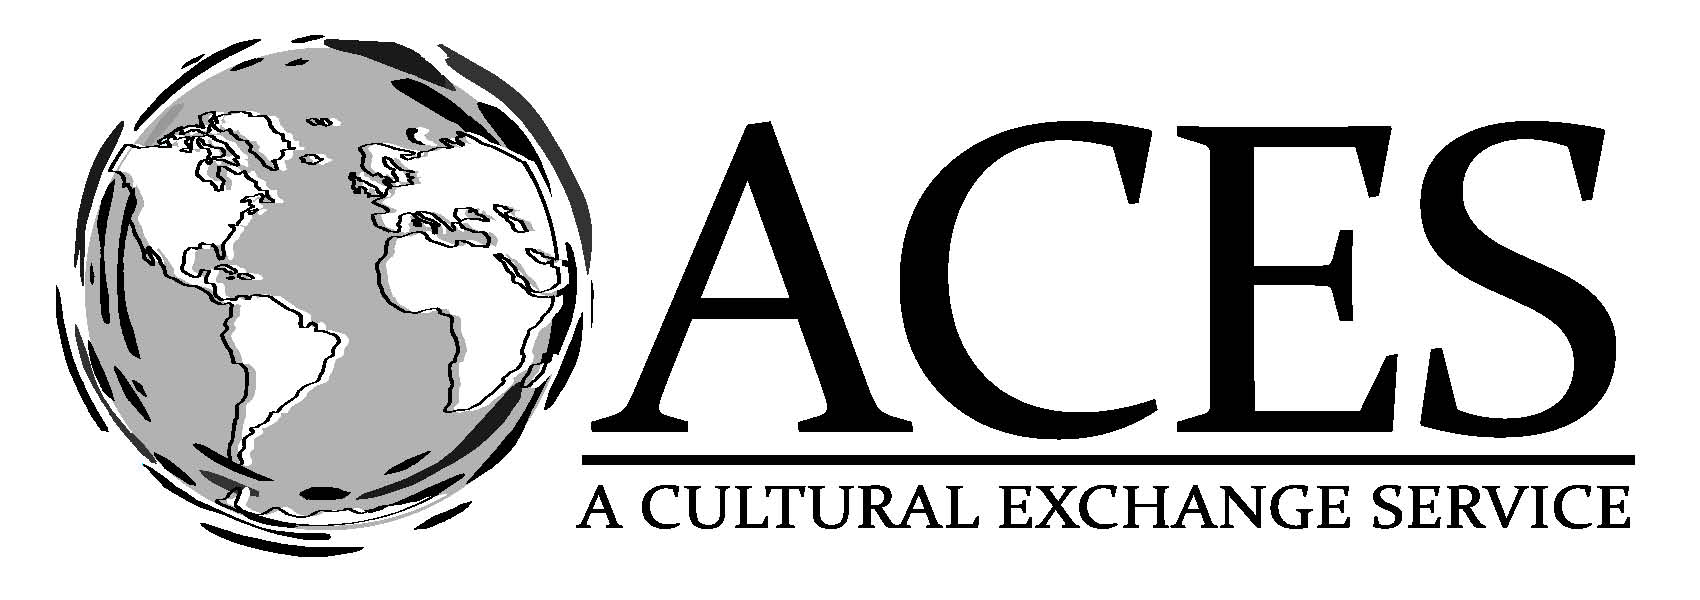 A Cultural Exchange Service | Deal With ACES